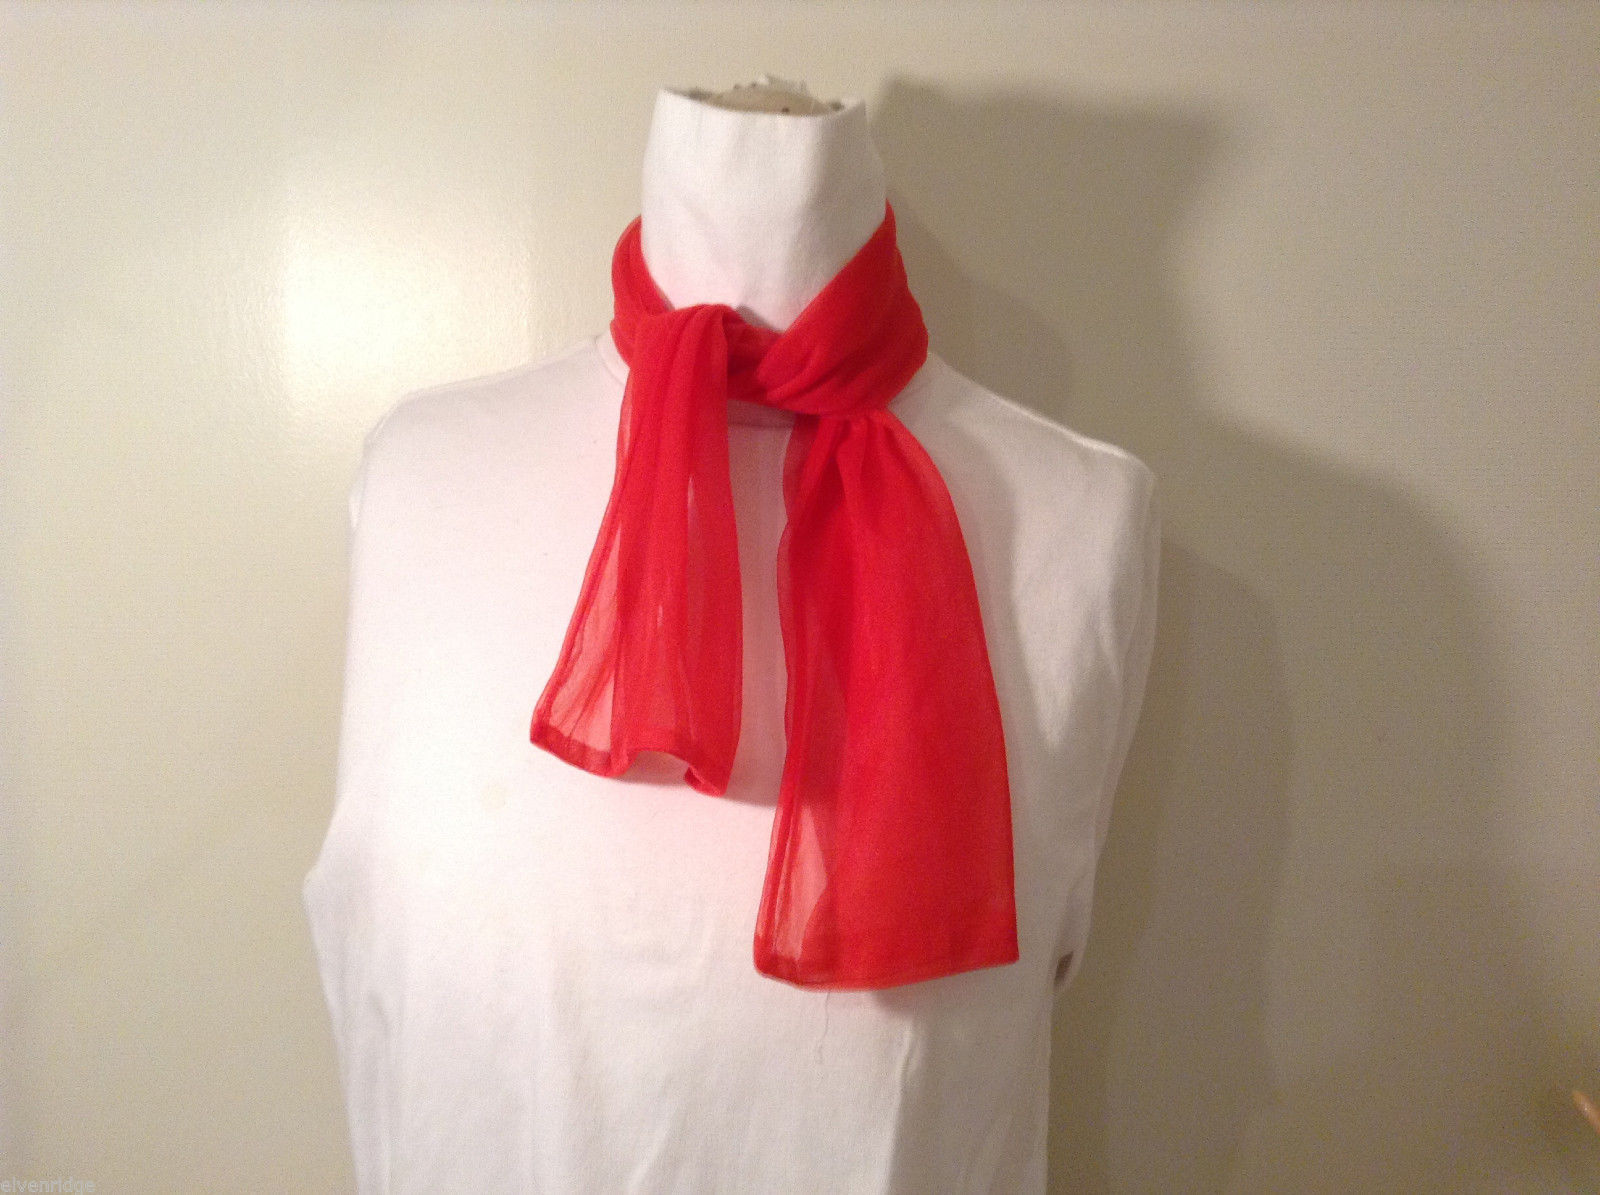 Sheer Tulle Red Scarf or Necktie